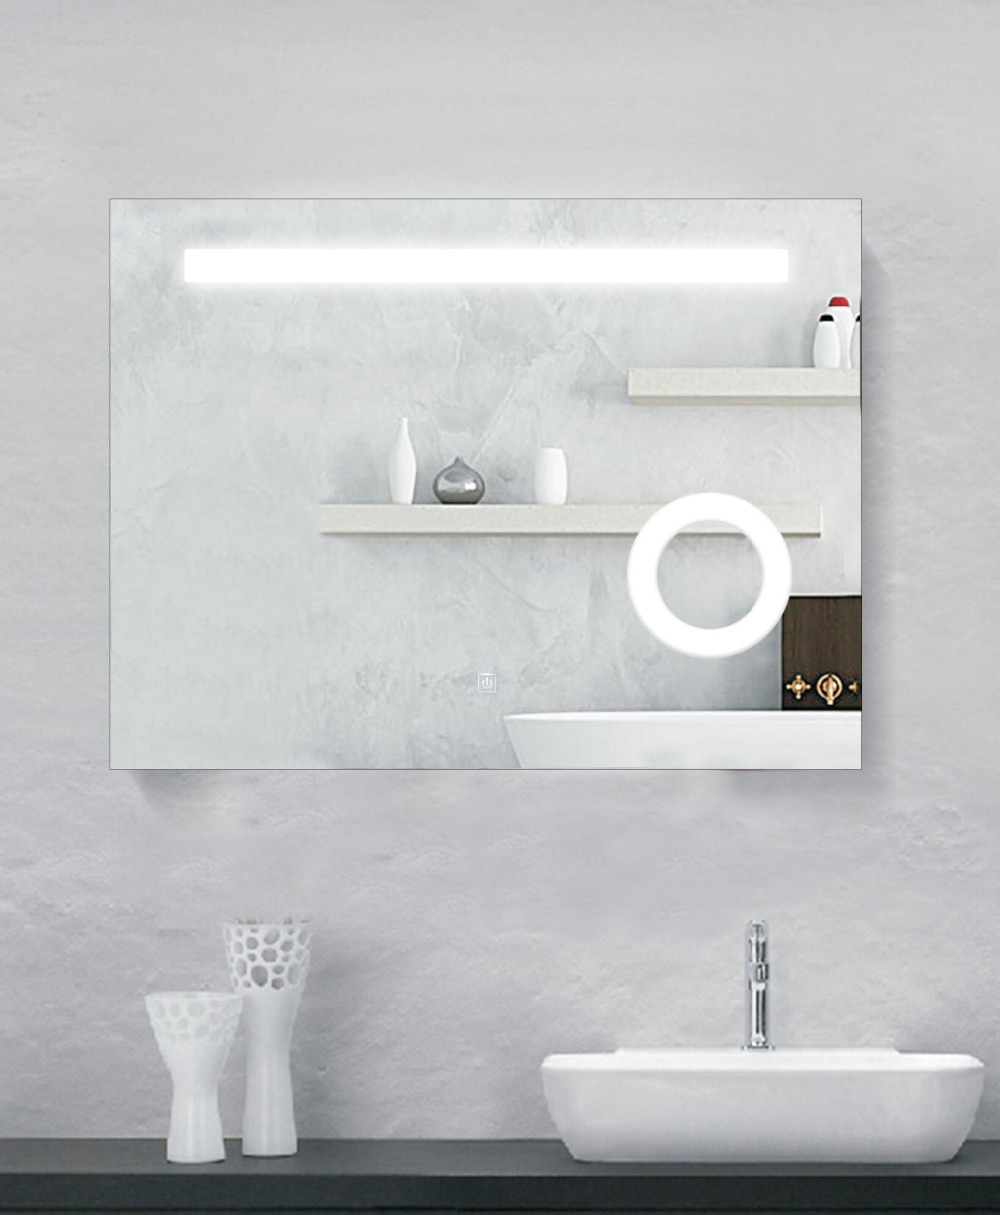 DIYHD Wall Mount Led Lighted Bathroom Mirror Vanity Defogger Square Lights Touch Light Mirror light mirror touch switch bathroom smart mirror switch led touch controller on mirror surface hot selling for hotel or bathroom